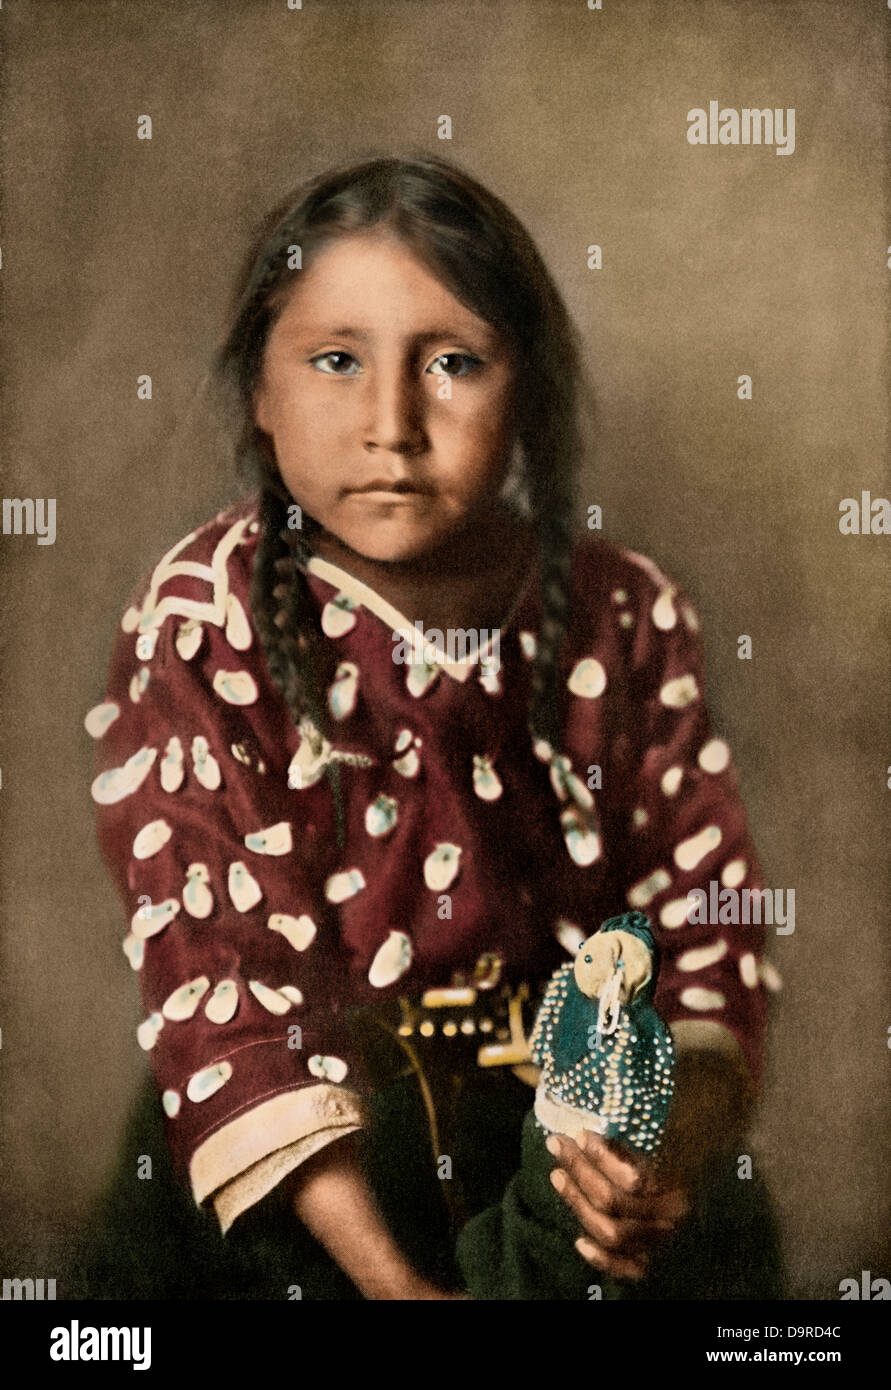 Crow Indian girl Glydis Littlenest, or Rides-a-Sorrel-Horse, circa 1900. Hand-colored halftone of a photograph - Stock Image